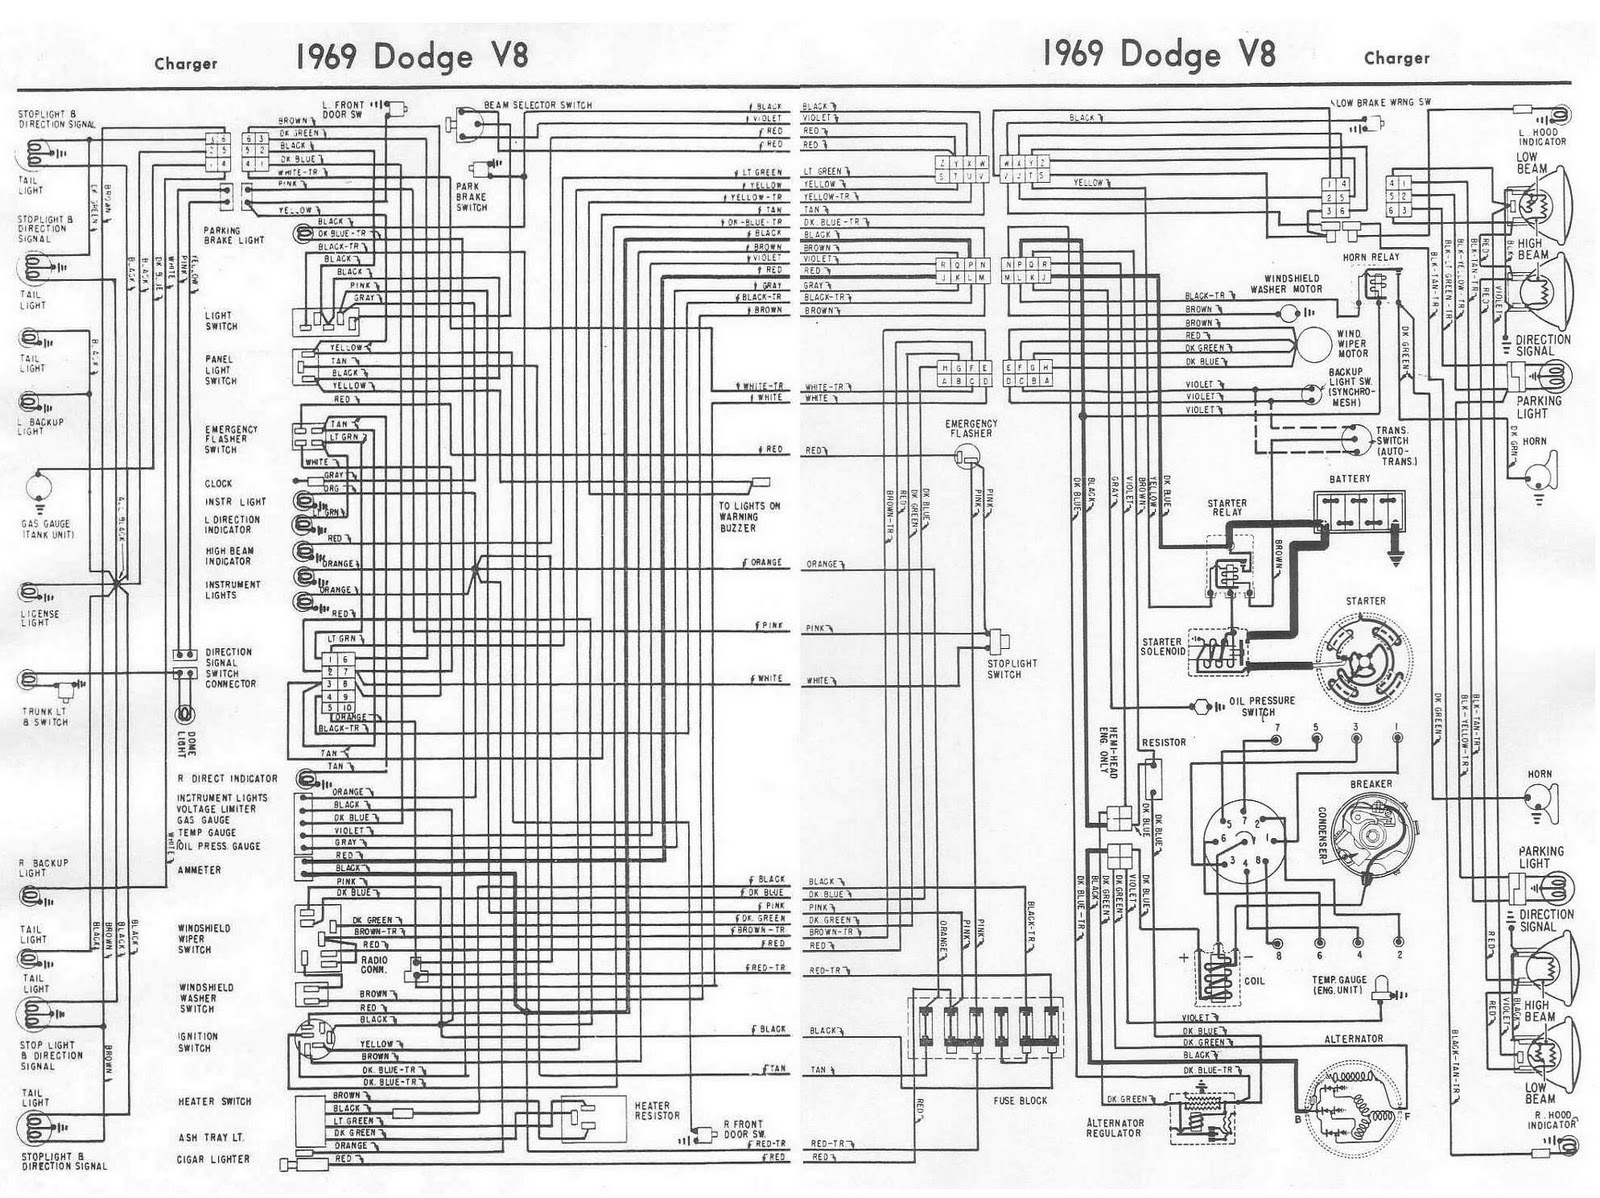 2012 dodge charger wiring diagram submited images